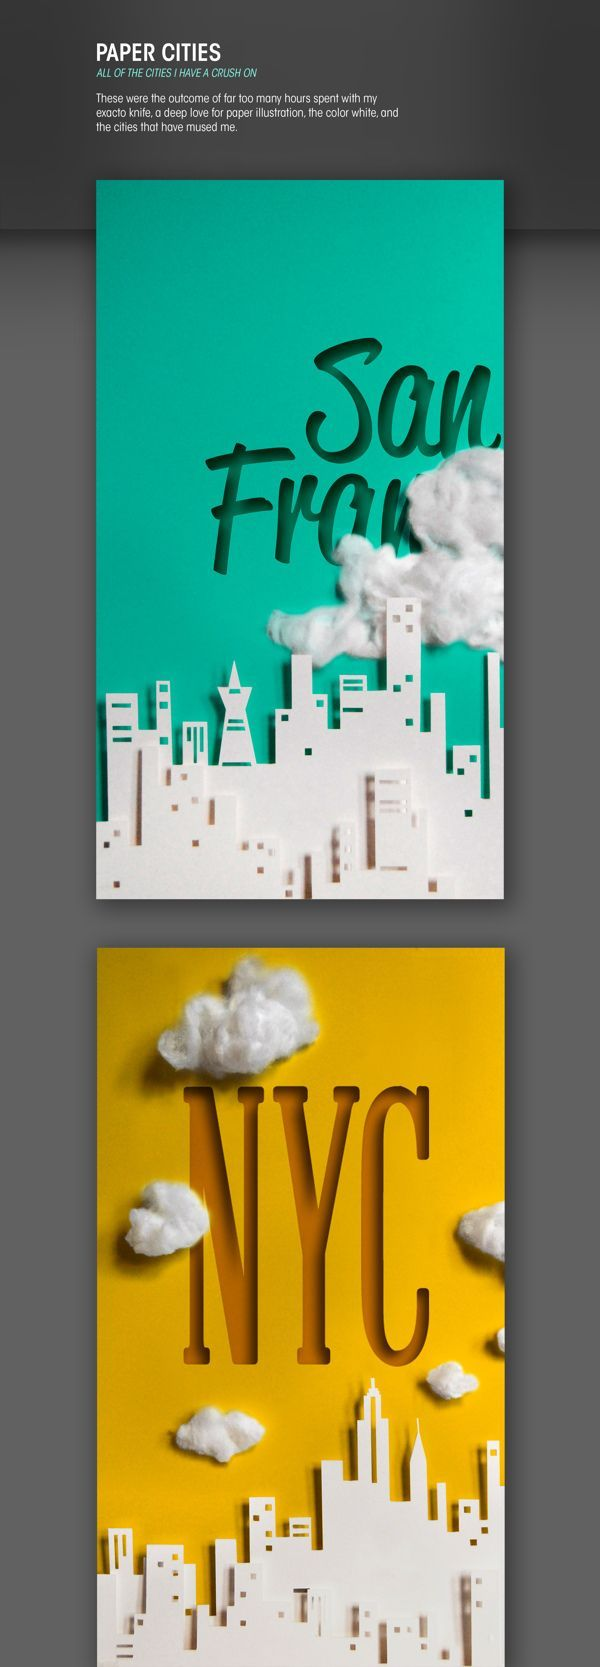 Paper Cities by Ali Prater. This is inspirational because it reminds me that design can be fun